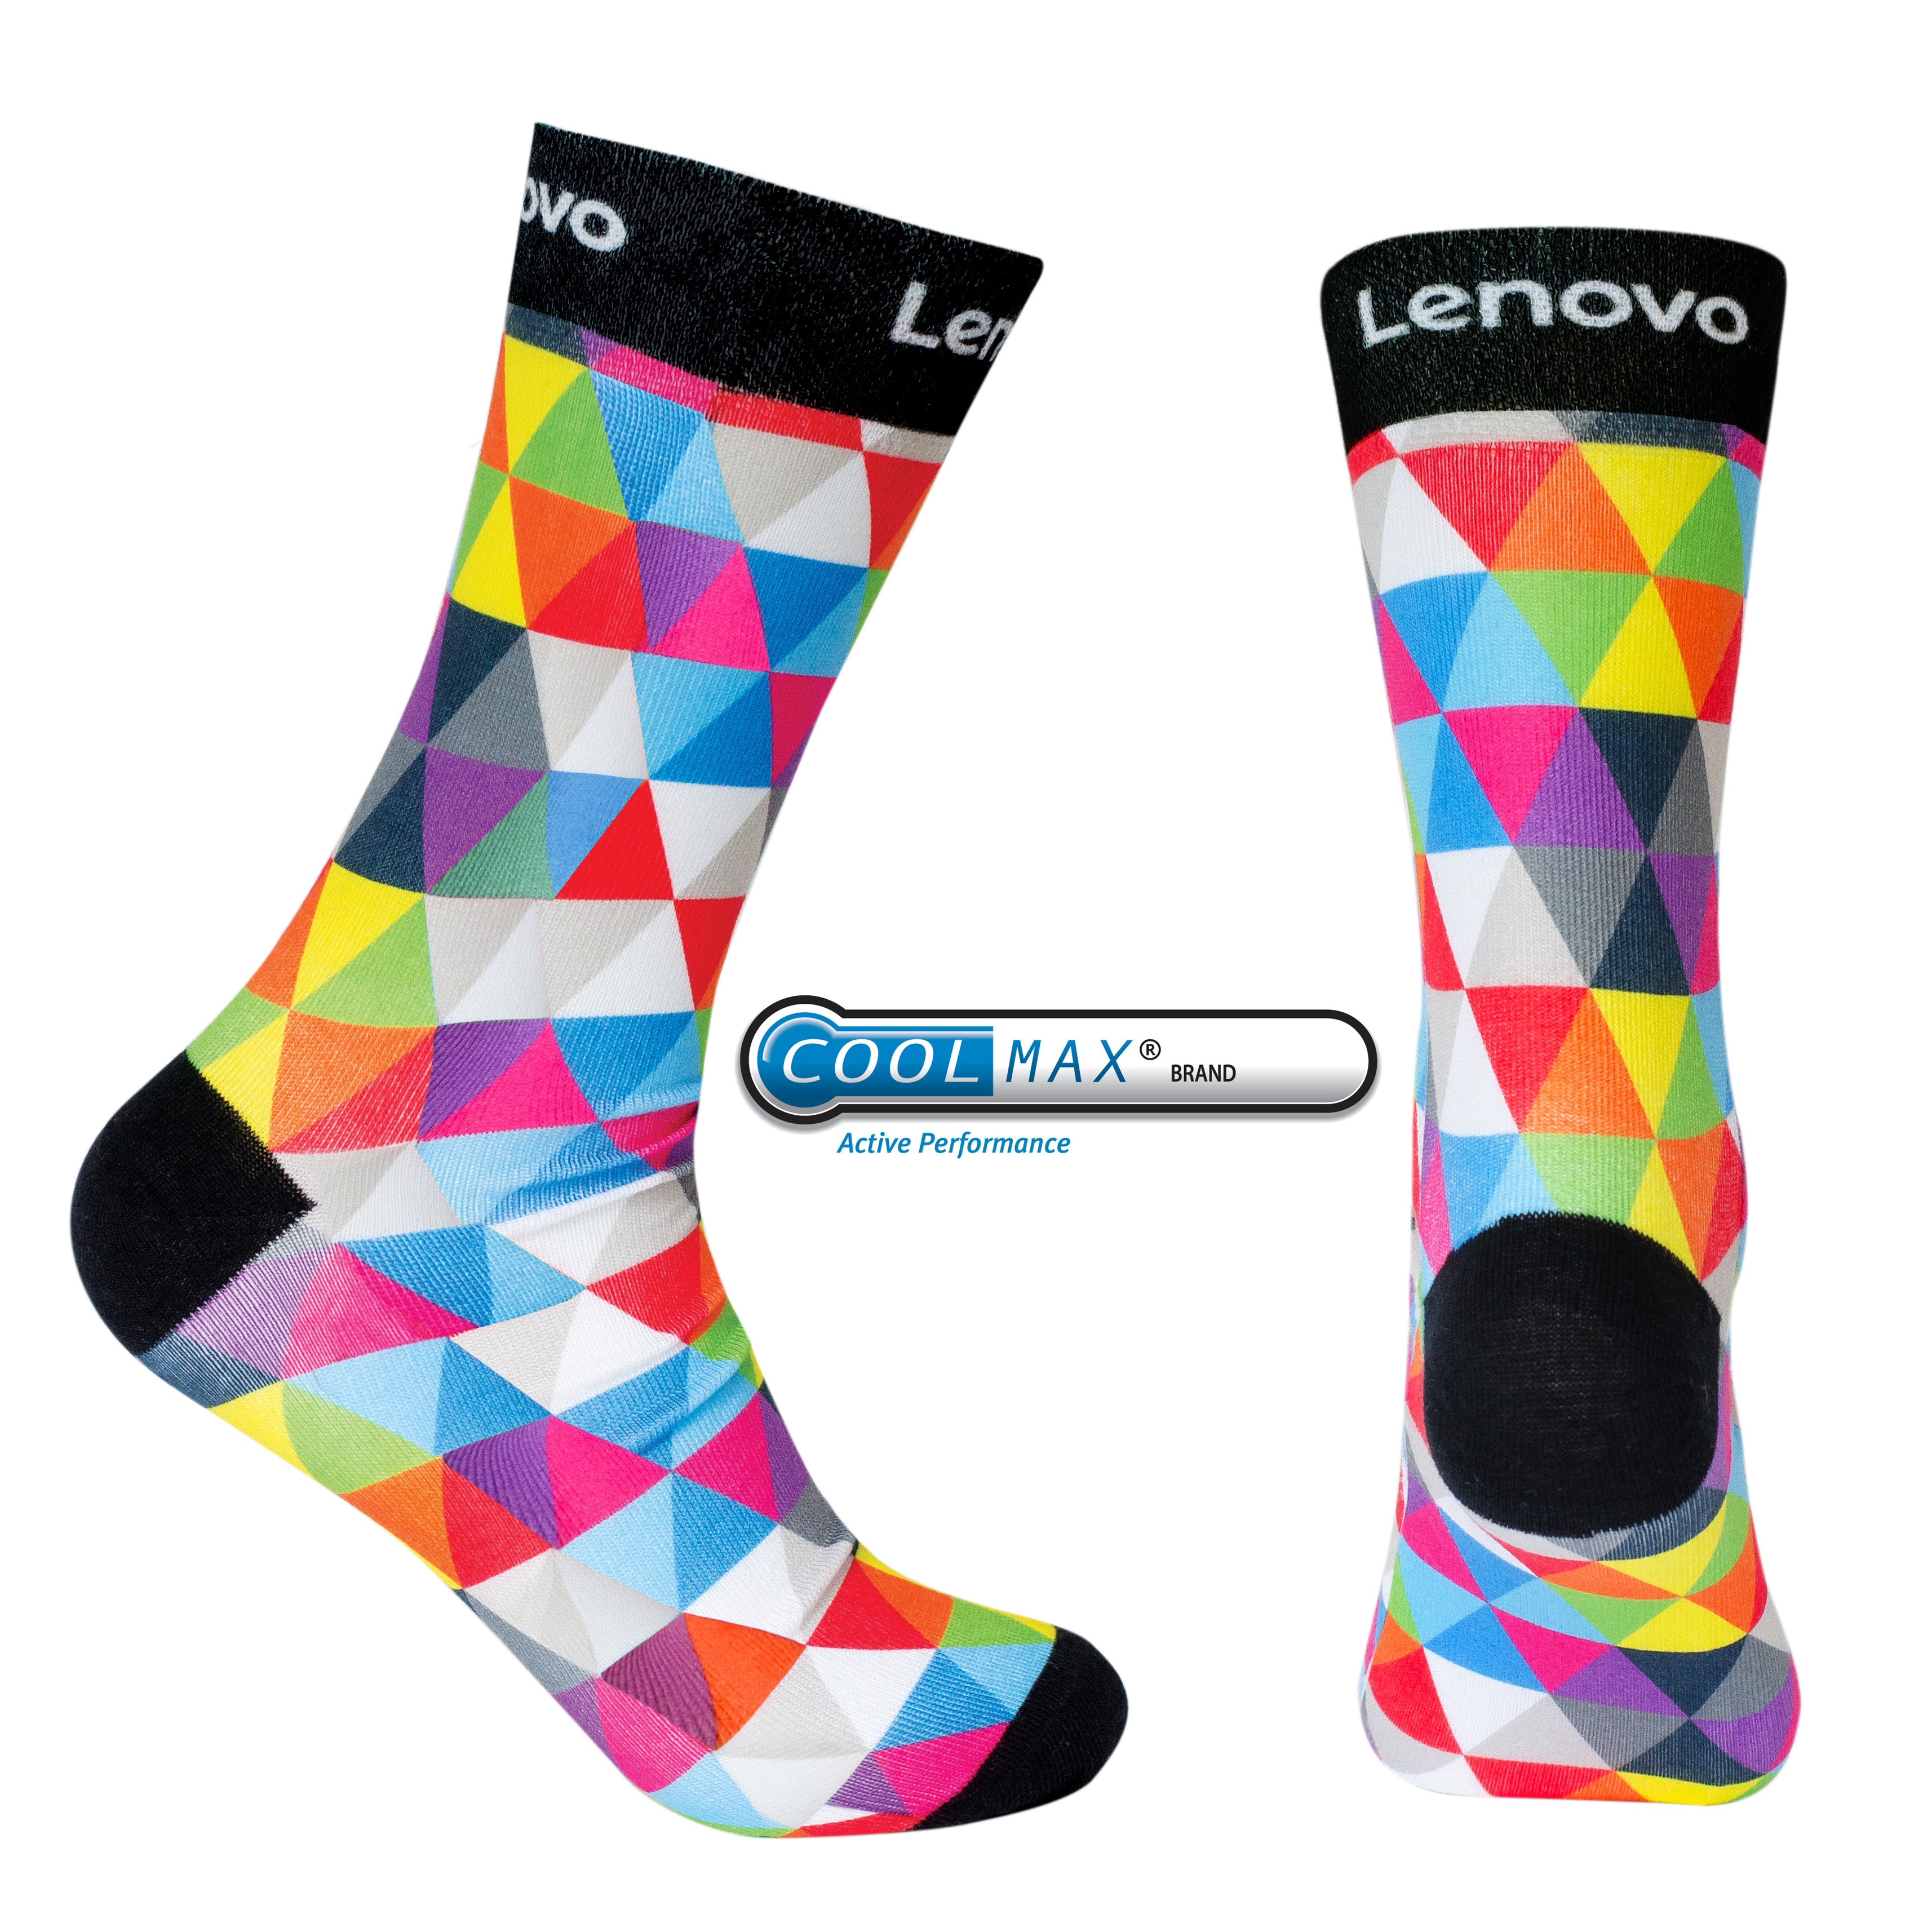 Printed Coolmax socks